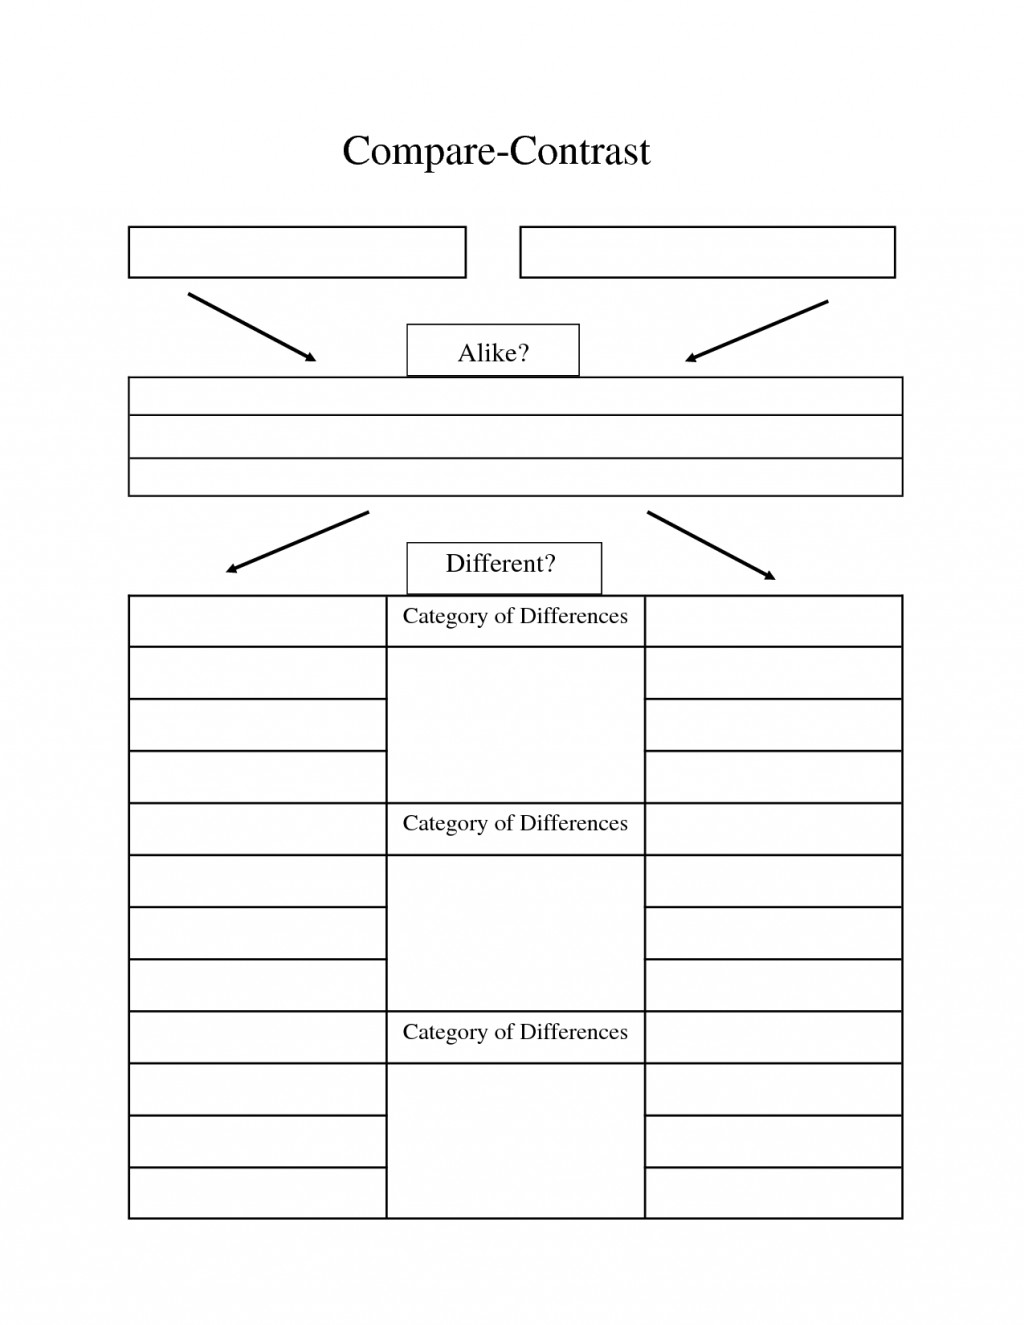 001 Compare And Contrast Essay Graphic Organizer Wondrous Middle School Large